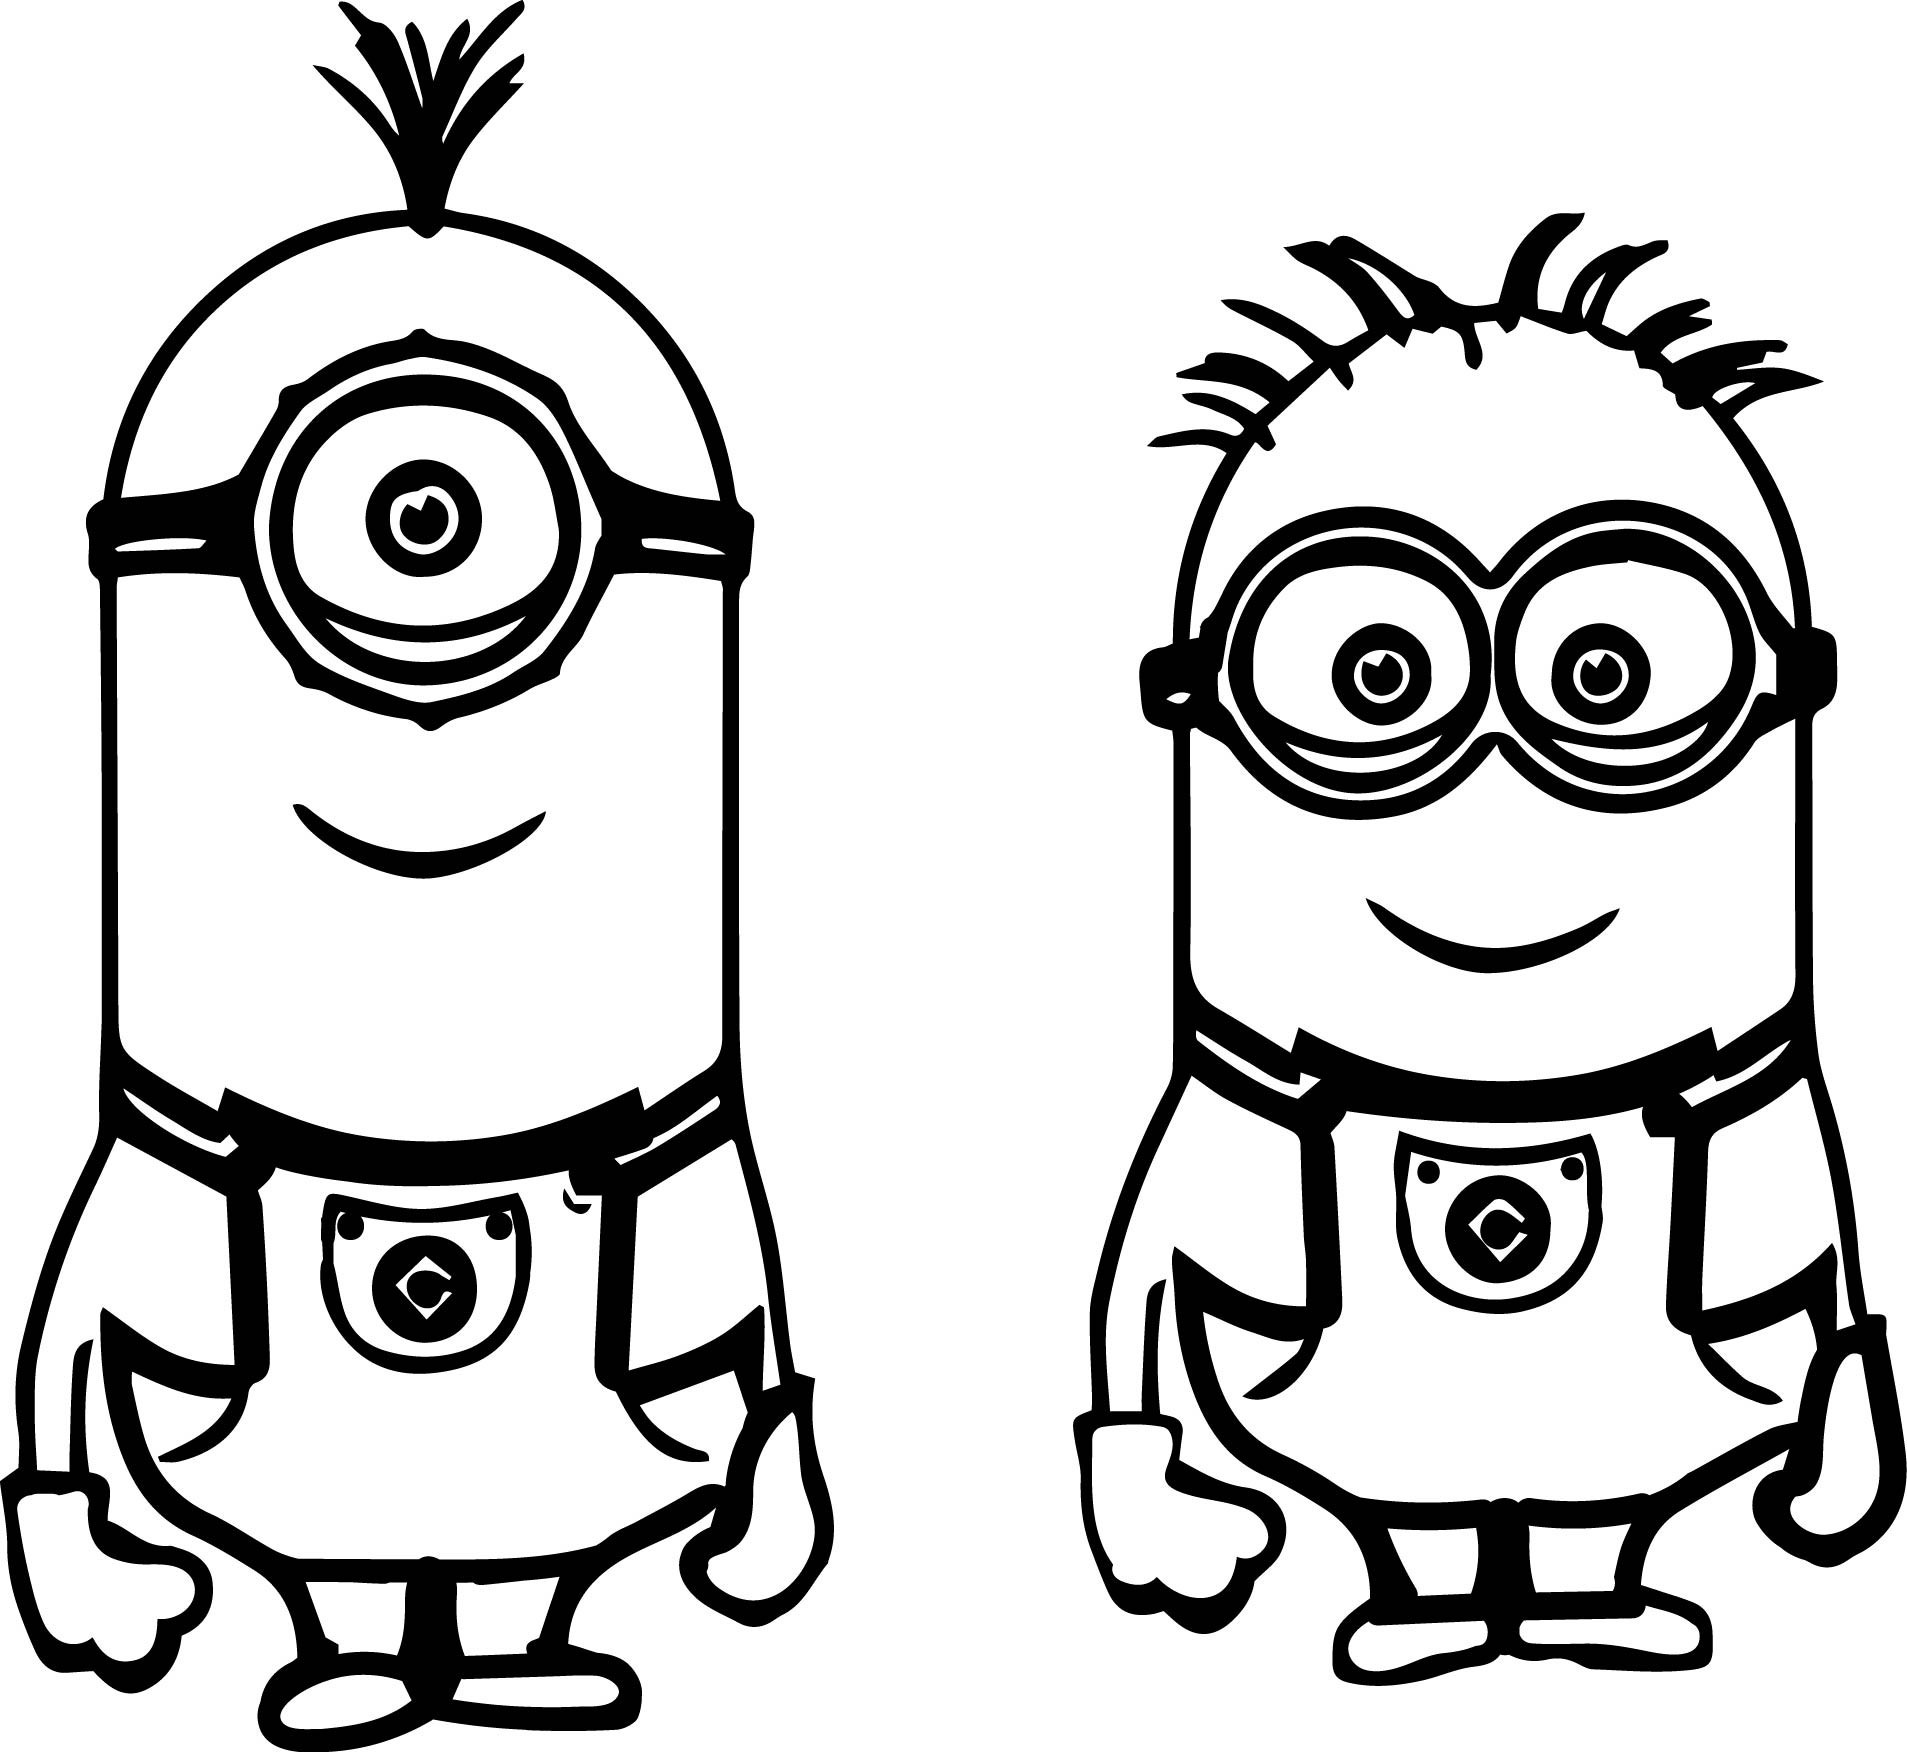 Minion drawing at paintingvalley. Minions clipart outline